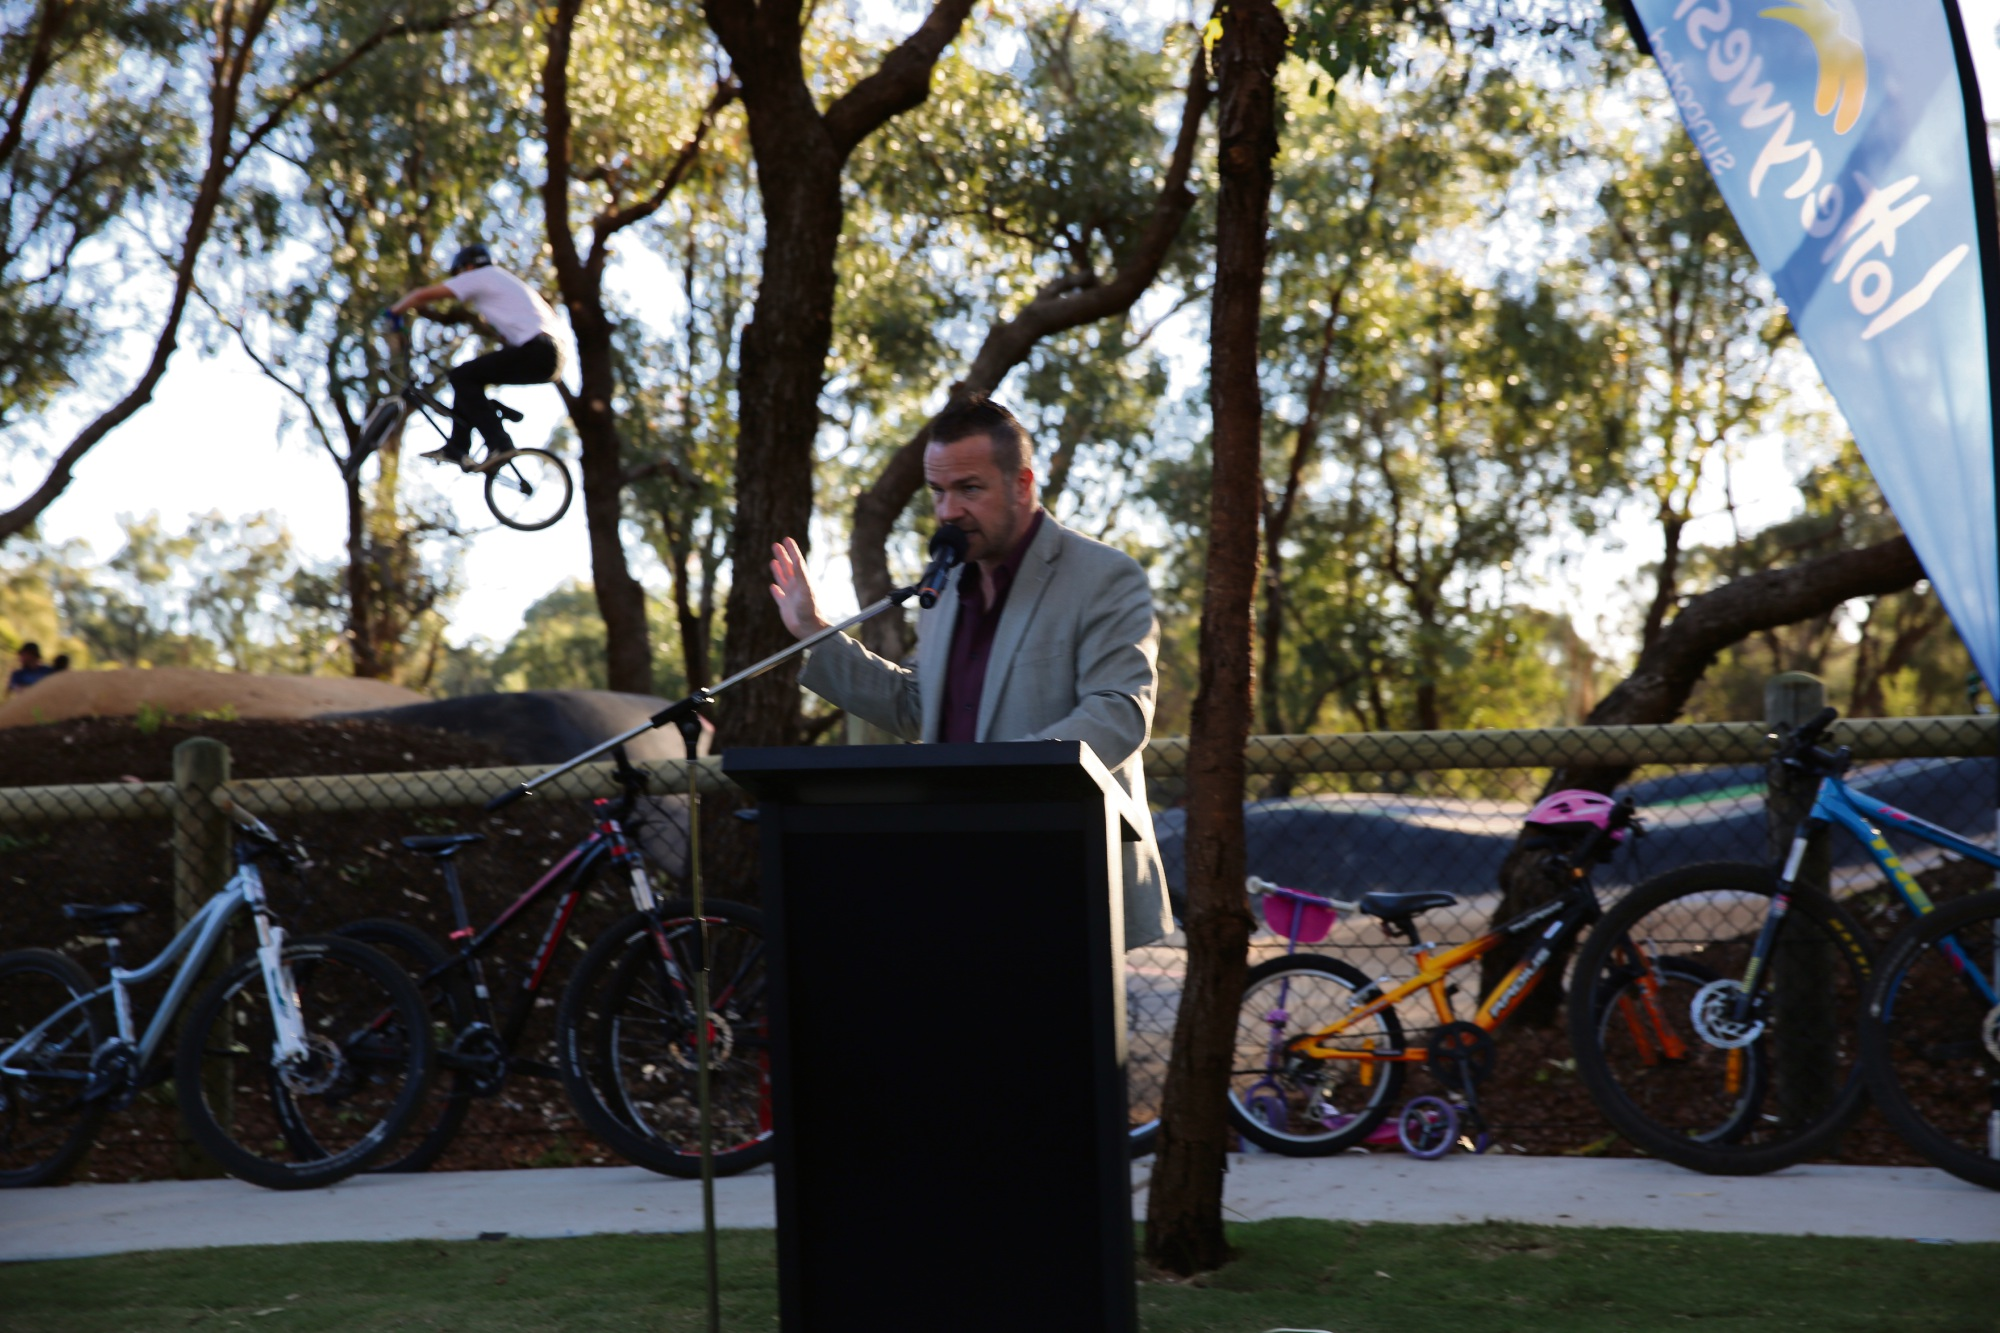 Joondalup Mayor Troy Pickard opens the new track.